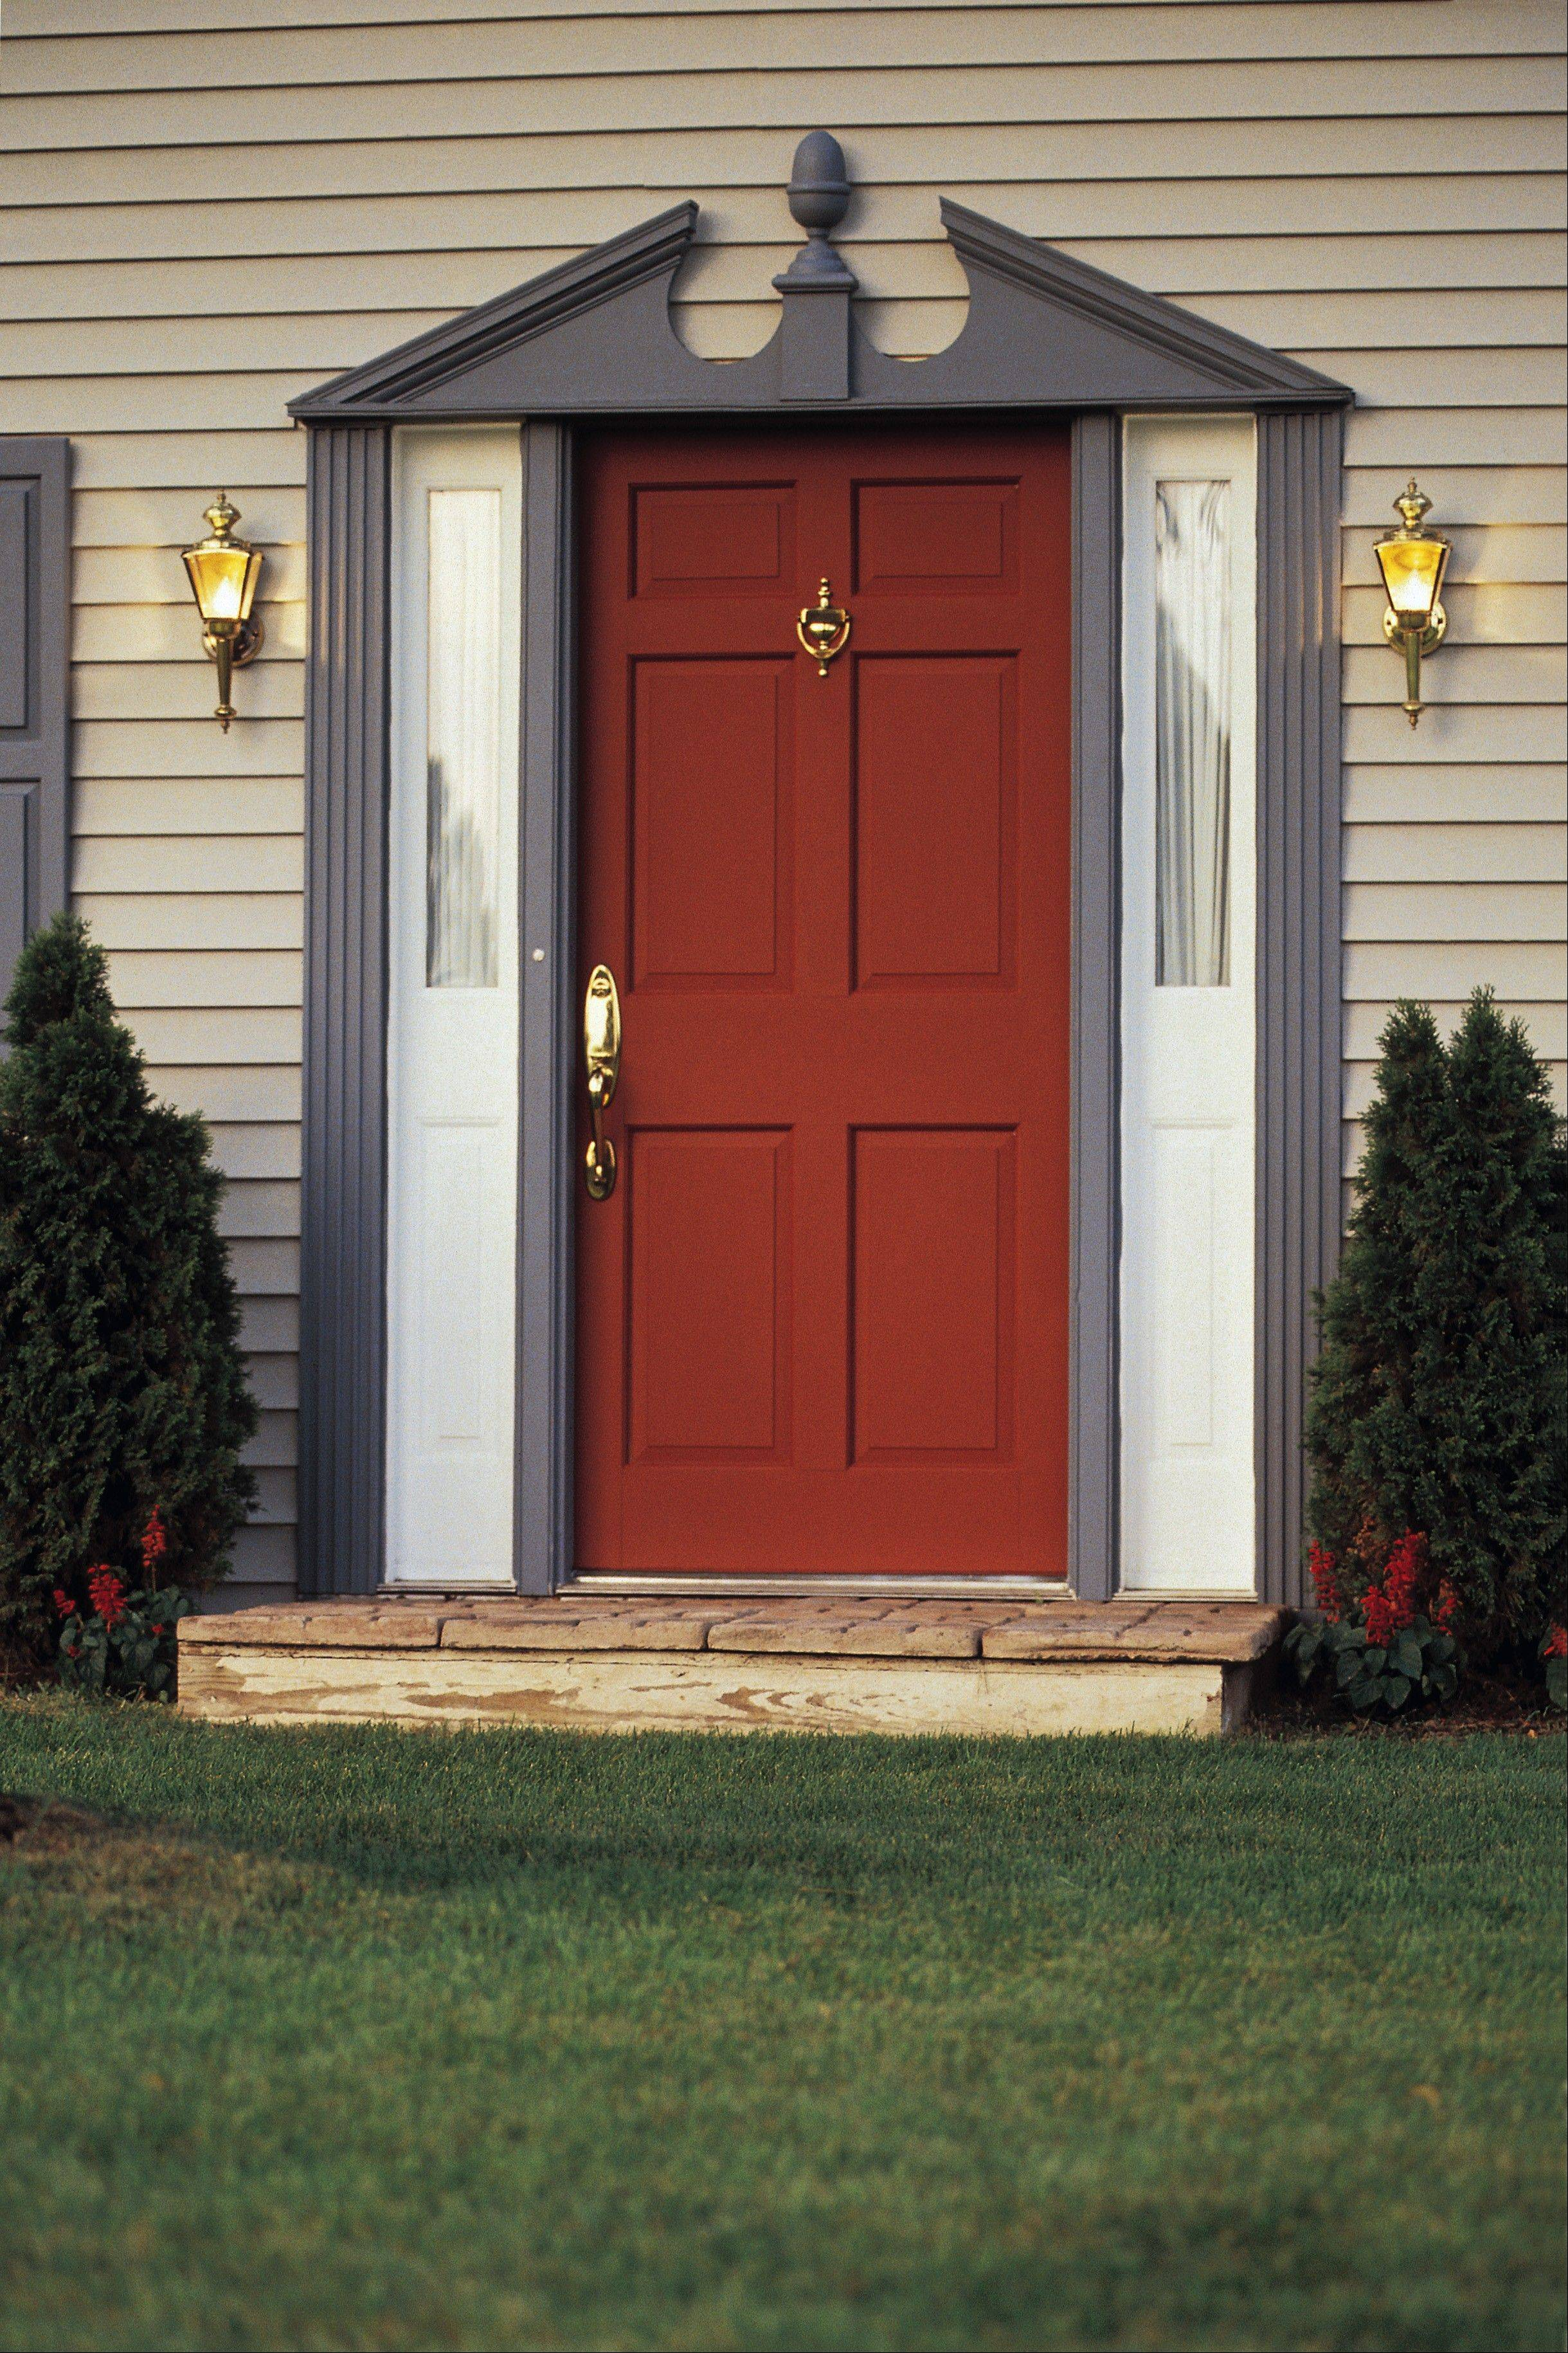 The Sidelights And Front Door Are Usually Installed As One Unit, So  Replacing Just The